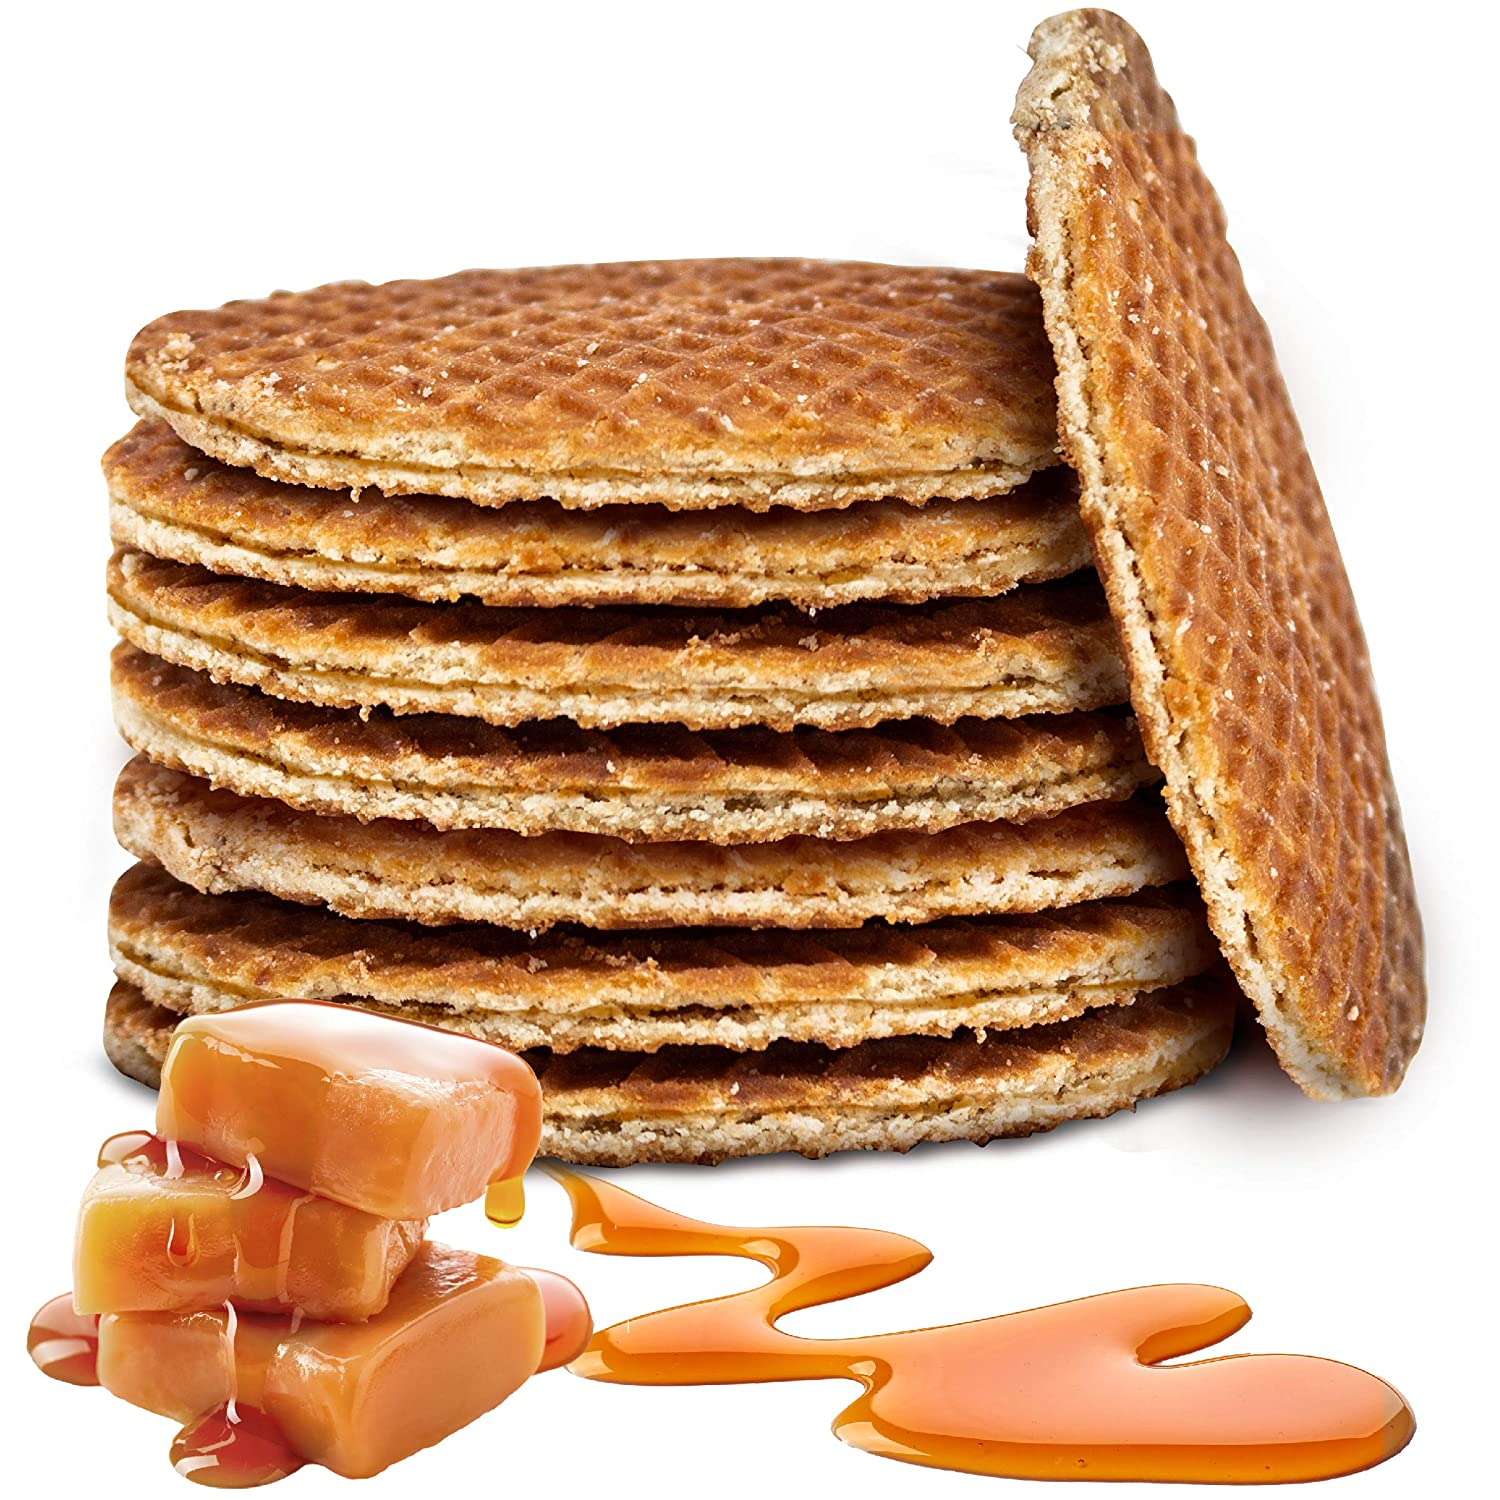 Amazon Com Double Dutch Stroopwafels Traditional Holland Syrup Waffle Cookies Wafer Snack Non Gmo Caramel 8 Piece Grocery Gourmet Food